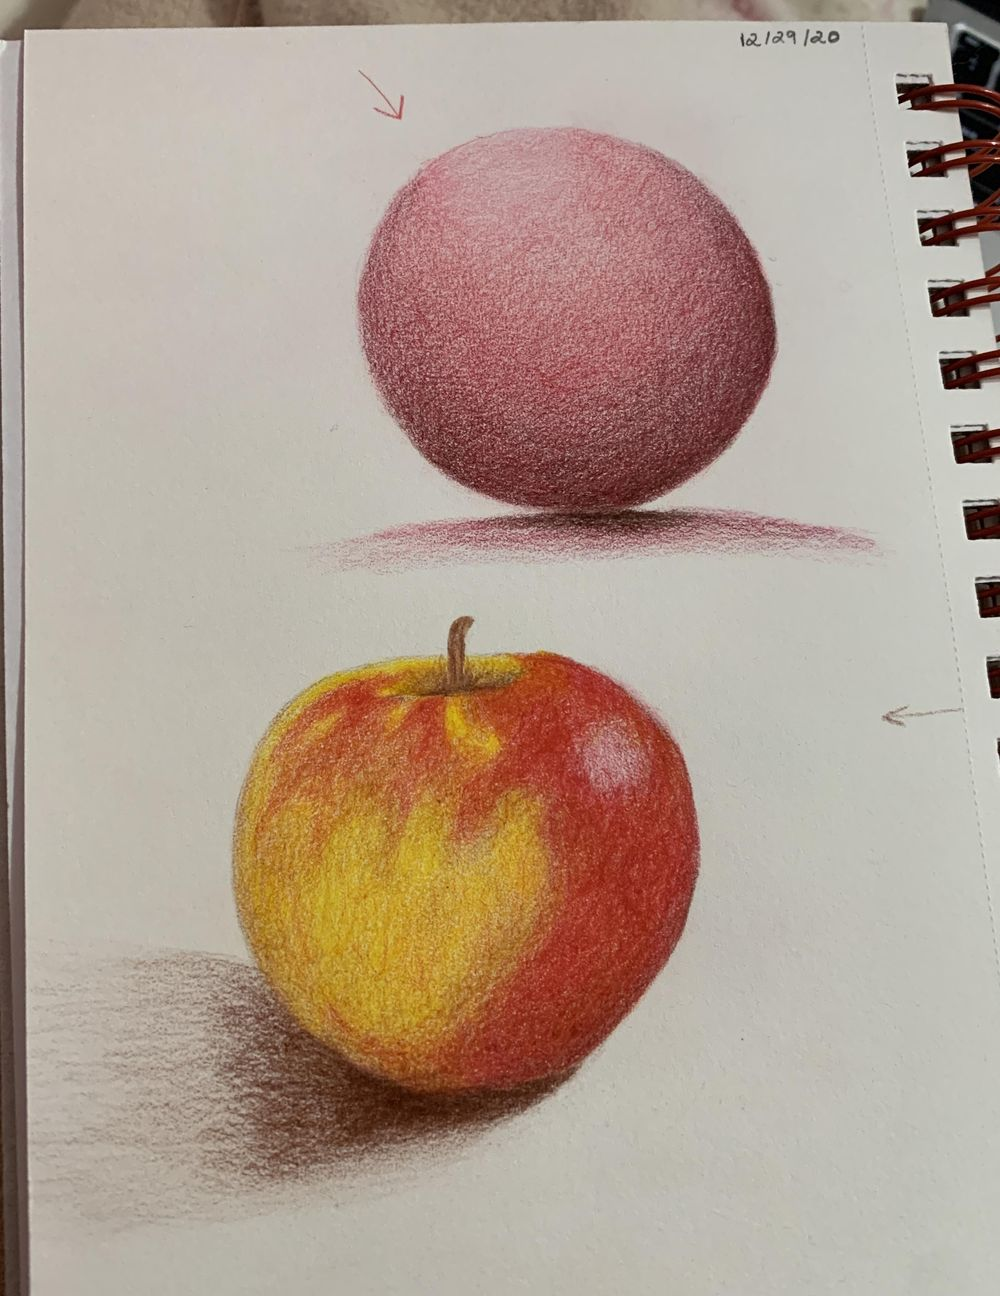 Sphere and Apple - image 2 - student project